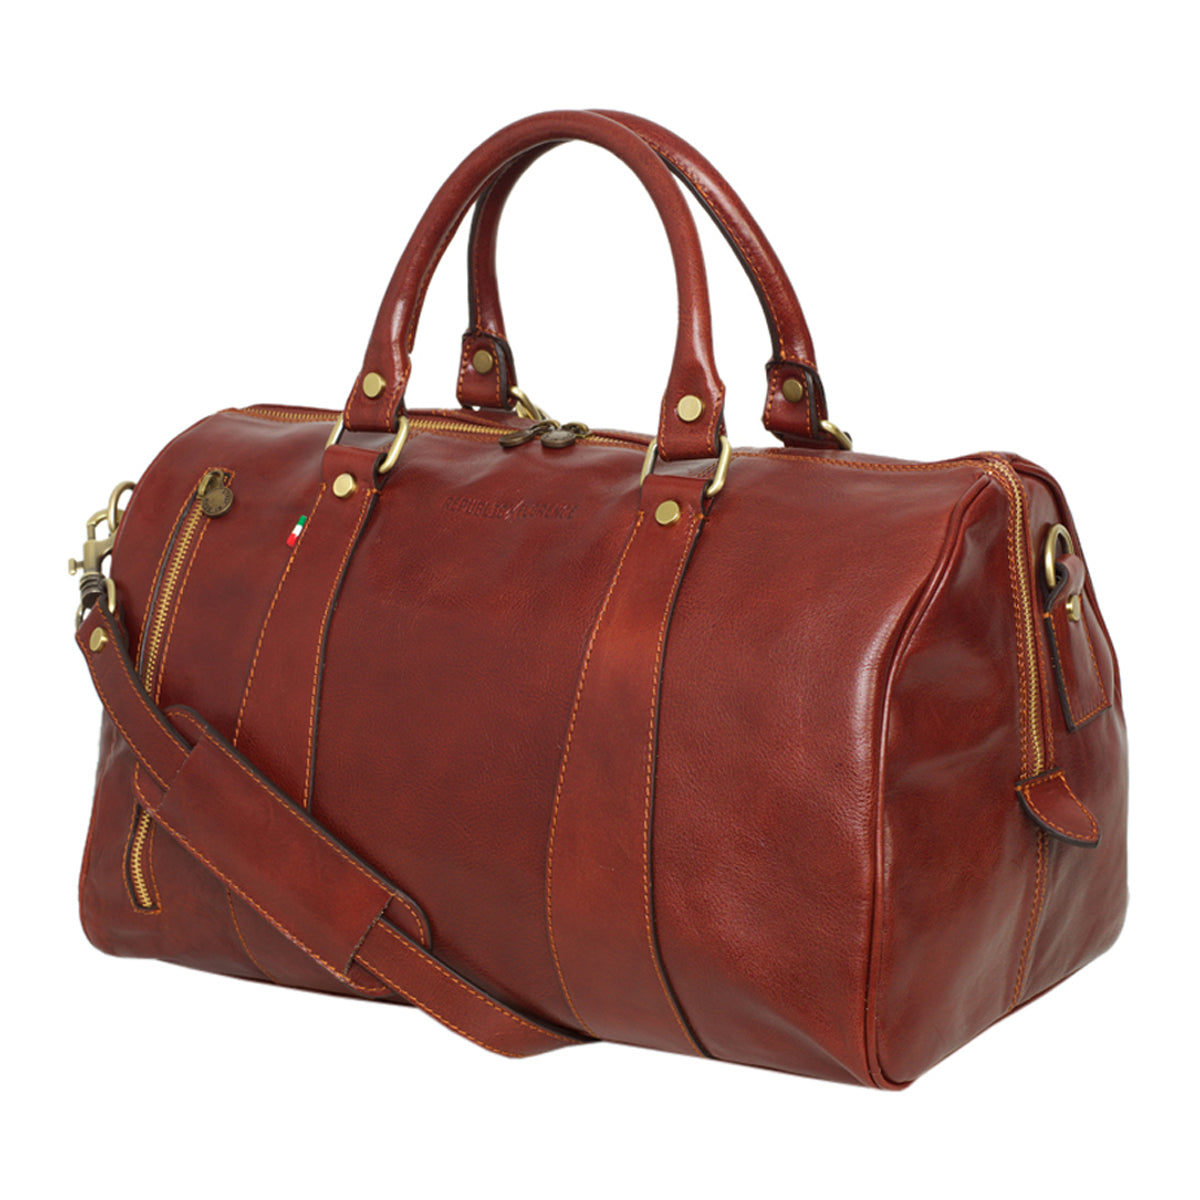 ab6294b8544 ... Florence - Men s Leather Duffle Bag - Small Nardi Brown - Leather  Overnigth Duffle Bag.  Best Authentic Italian Leather Products Online  -  Leathershop